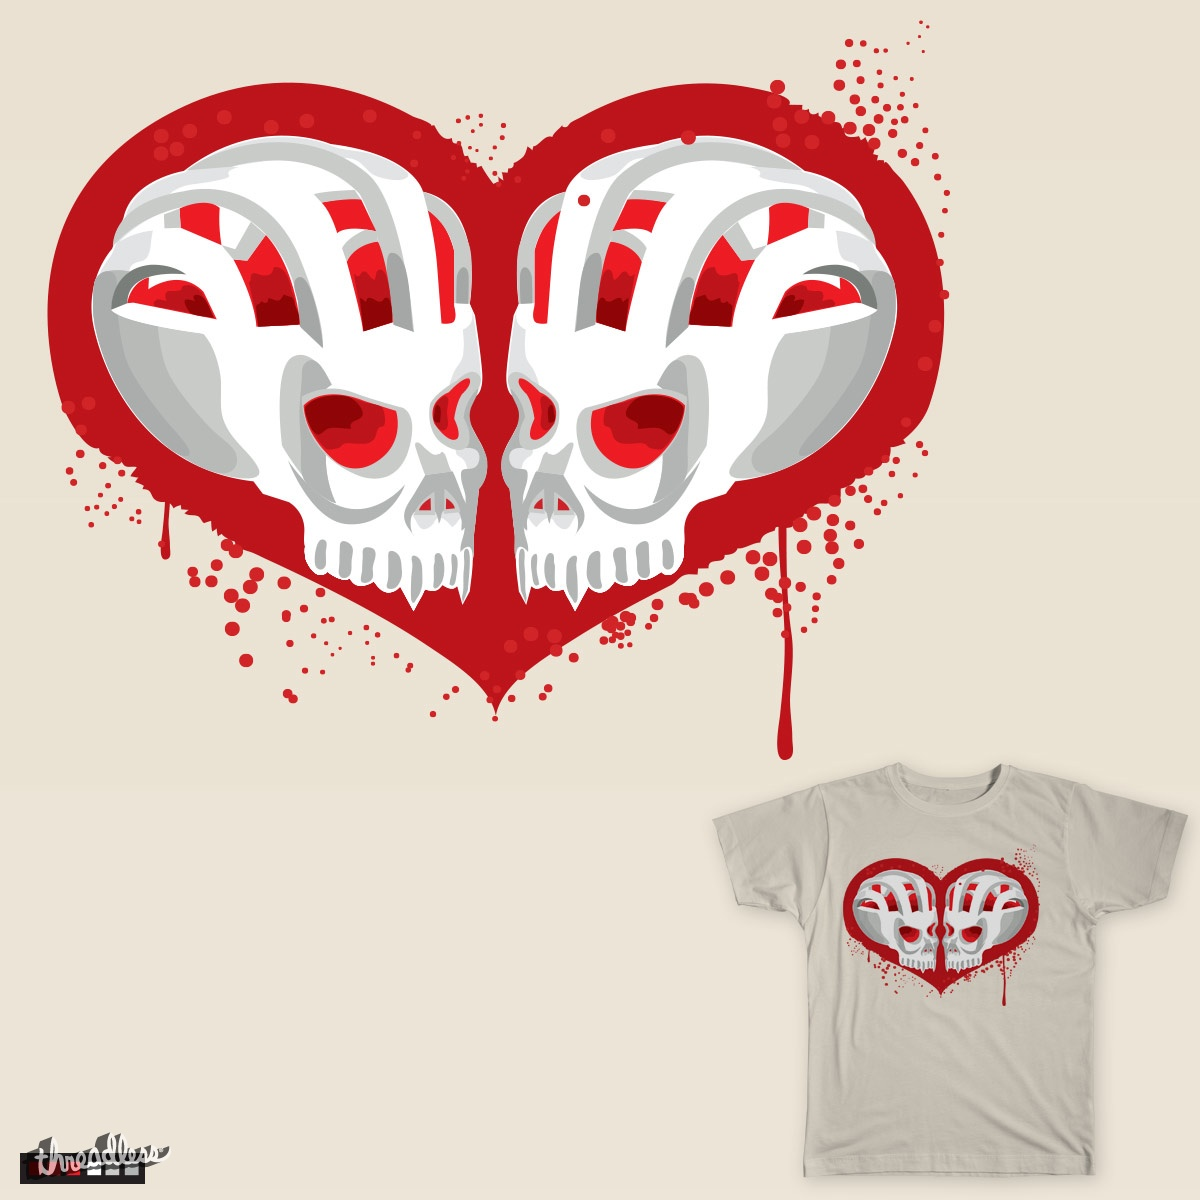 Love Skulls, a cool t-shirt design